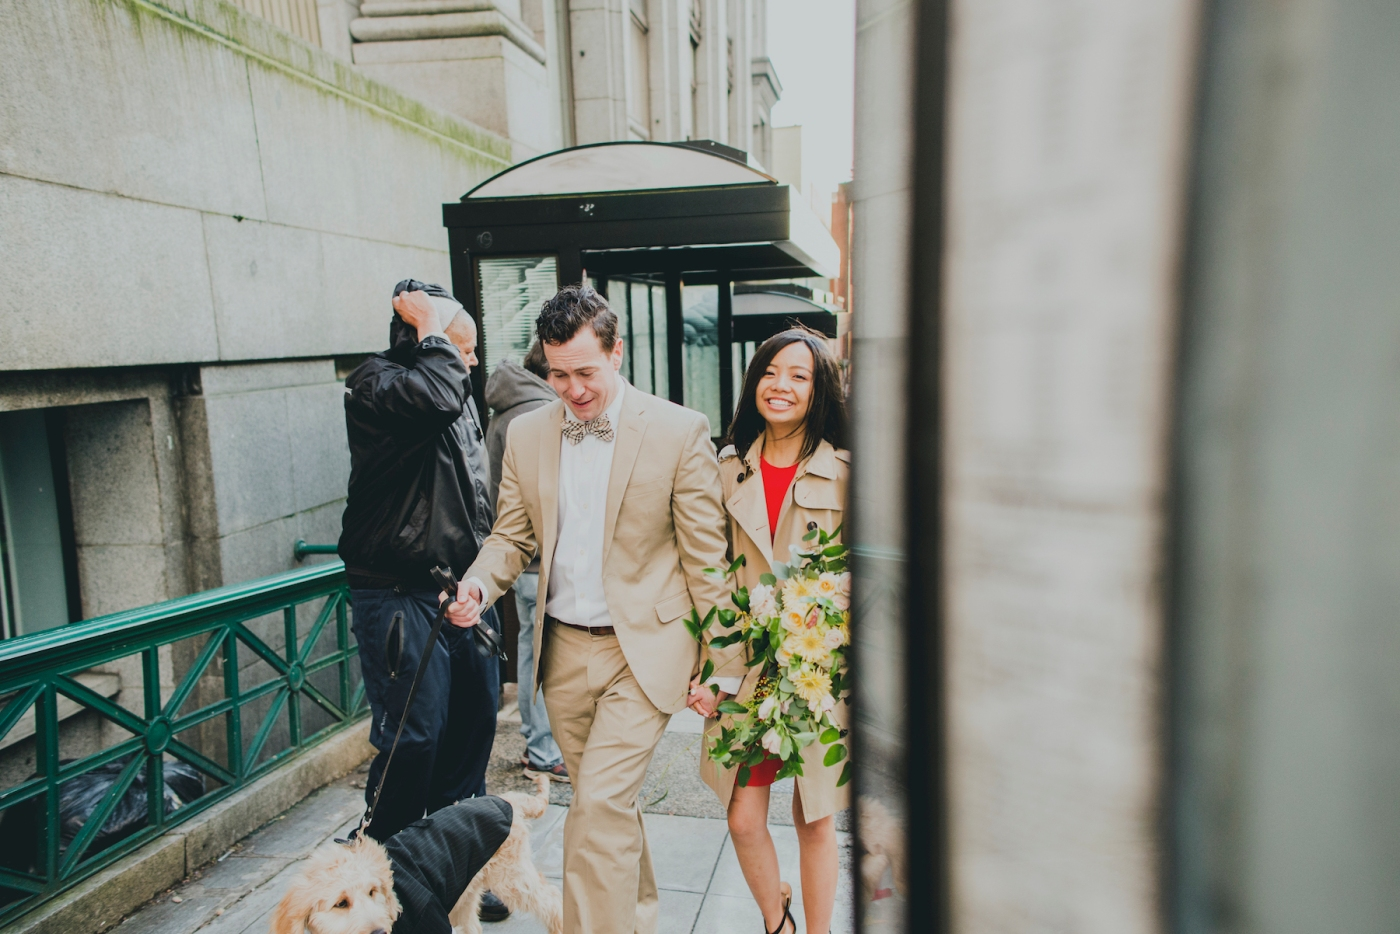 add-newphotography_by_jane_speleers_2017_seattle_court_house_wedding-dsc_9273